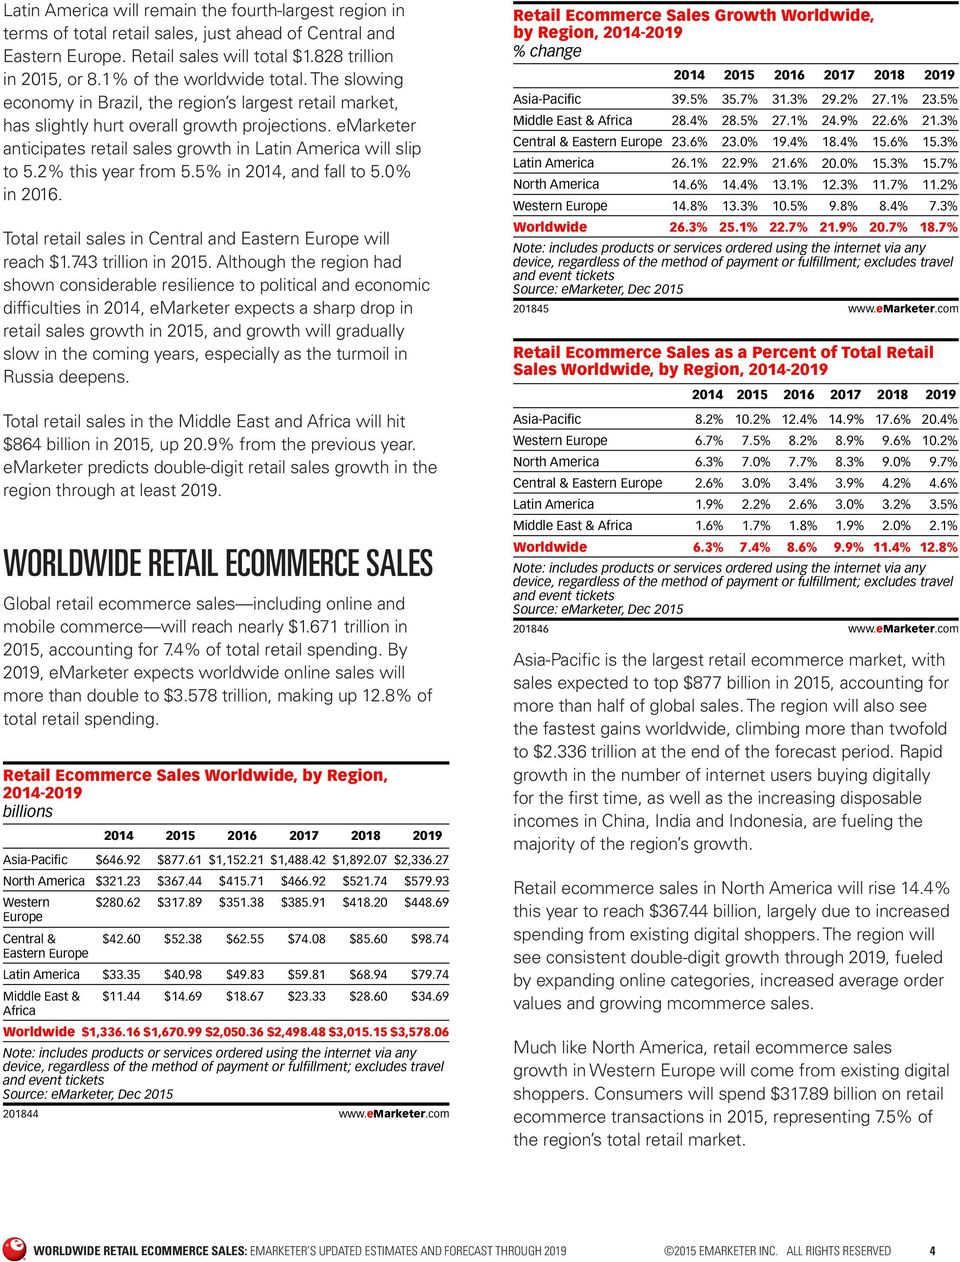 emarketer anticipates retail sales growth in Latin America will slip to 5.2% this year from 5.5% in 2014, and fall to 5.0% in 2016. Total retail sales in Central and Eastern Europe will reach $1.